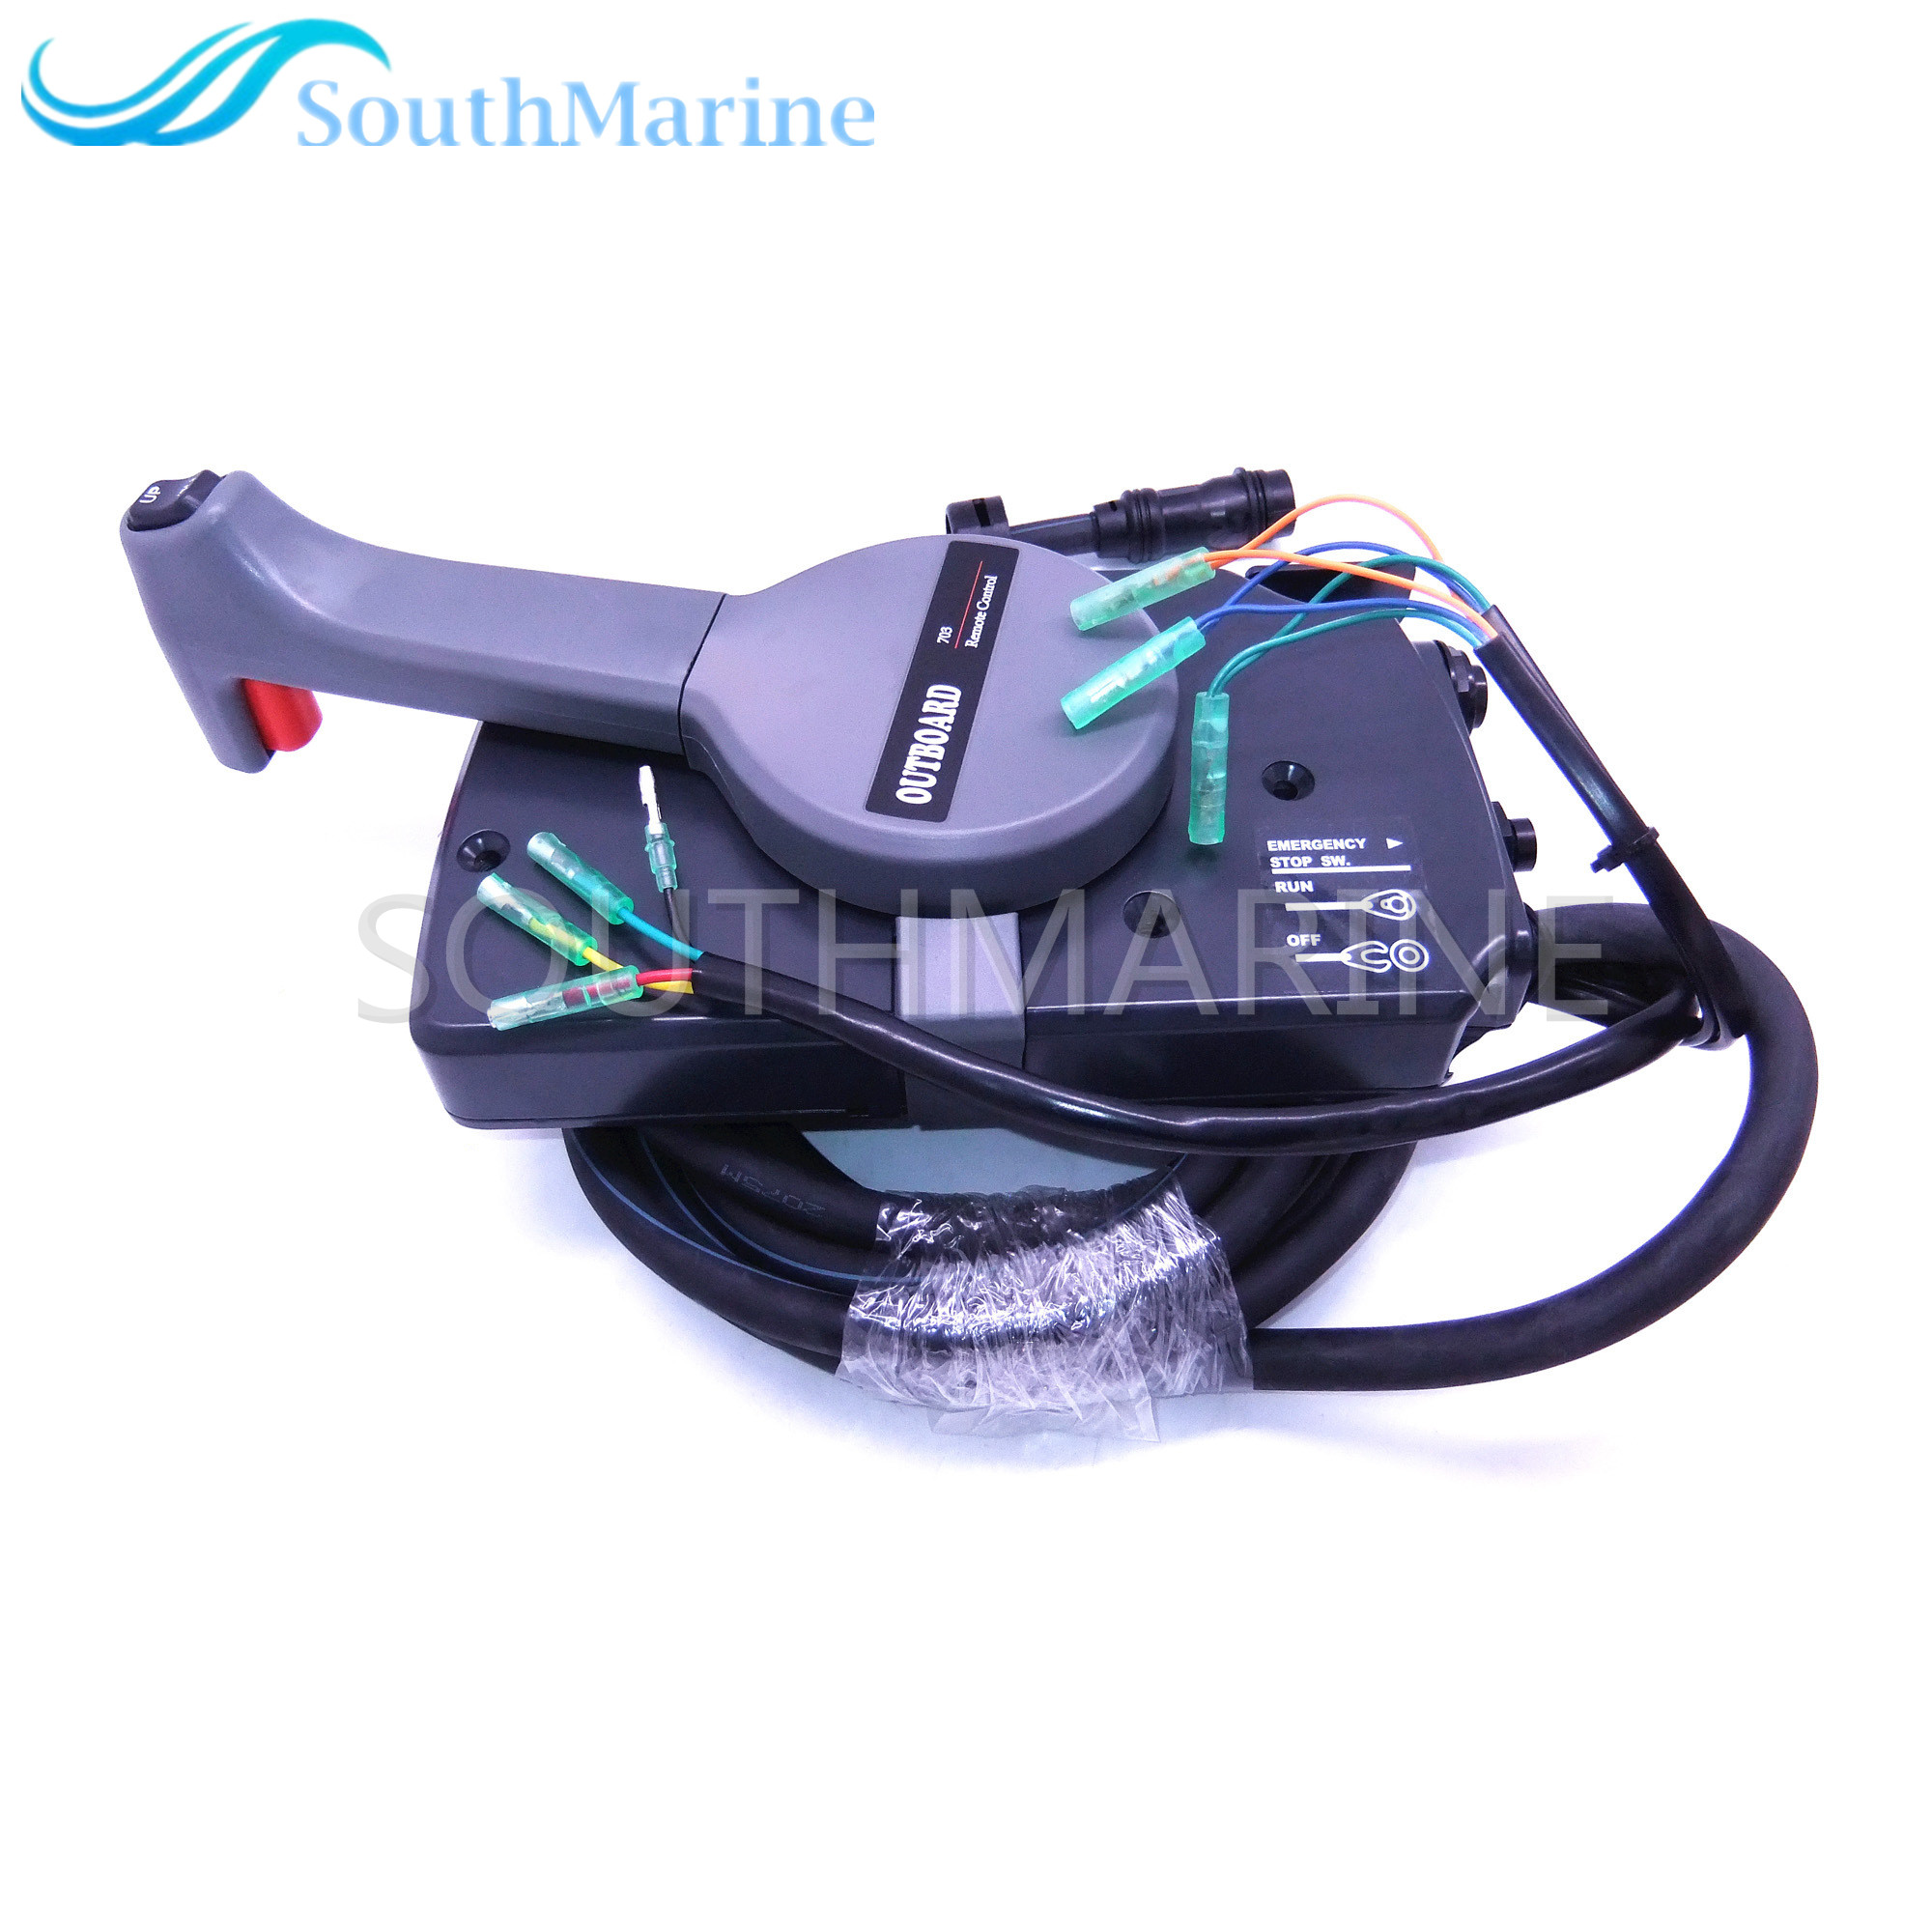 703-48207-22-00 Side Mount Remote Control Throttle Shift Box For Yamaha Outboard Engine 10 Pins Boat Motor , Right hand New Type